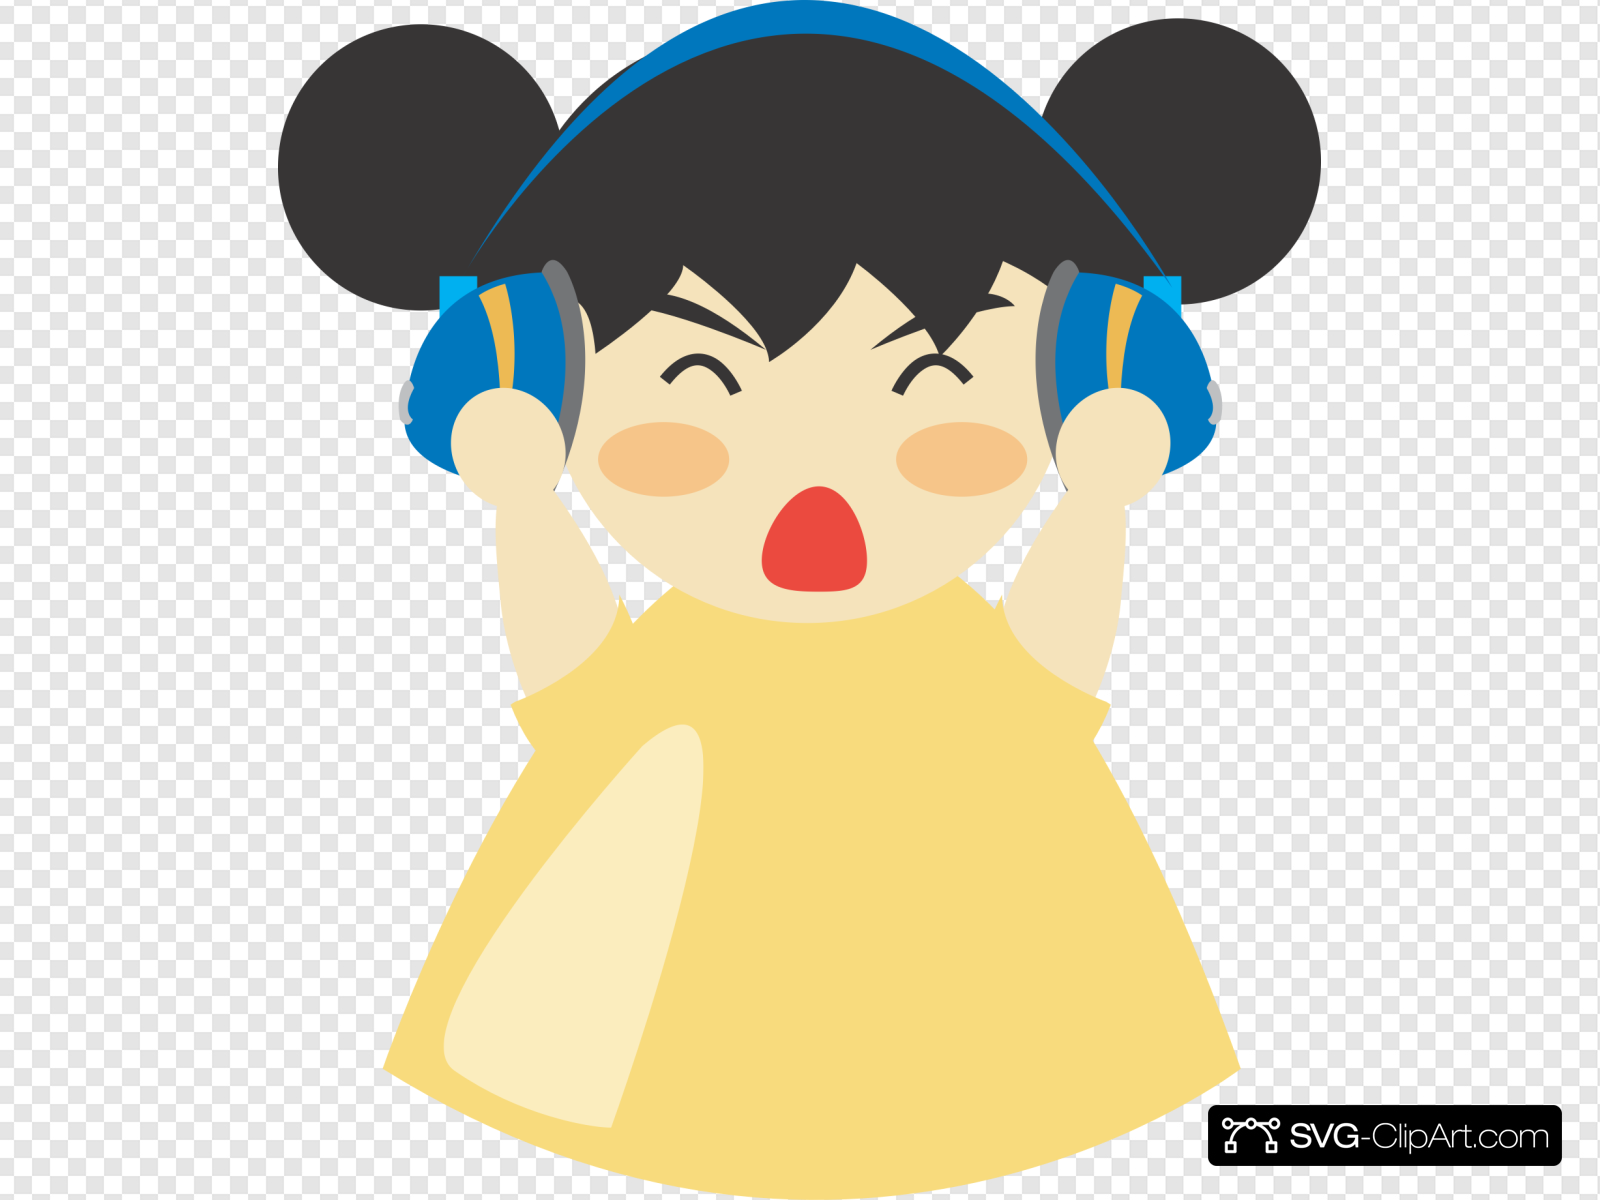 Girl With Headphones Clip art, Icon and SVG.